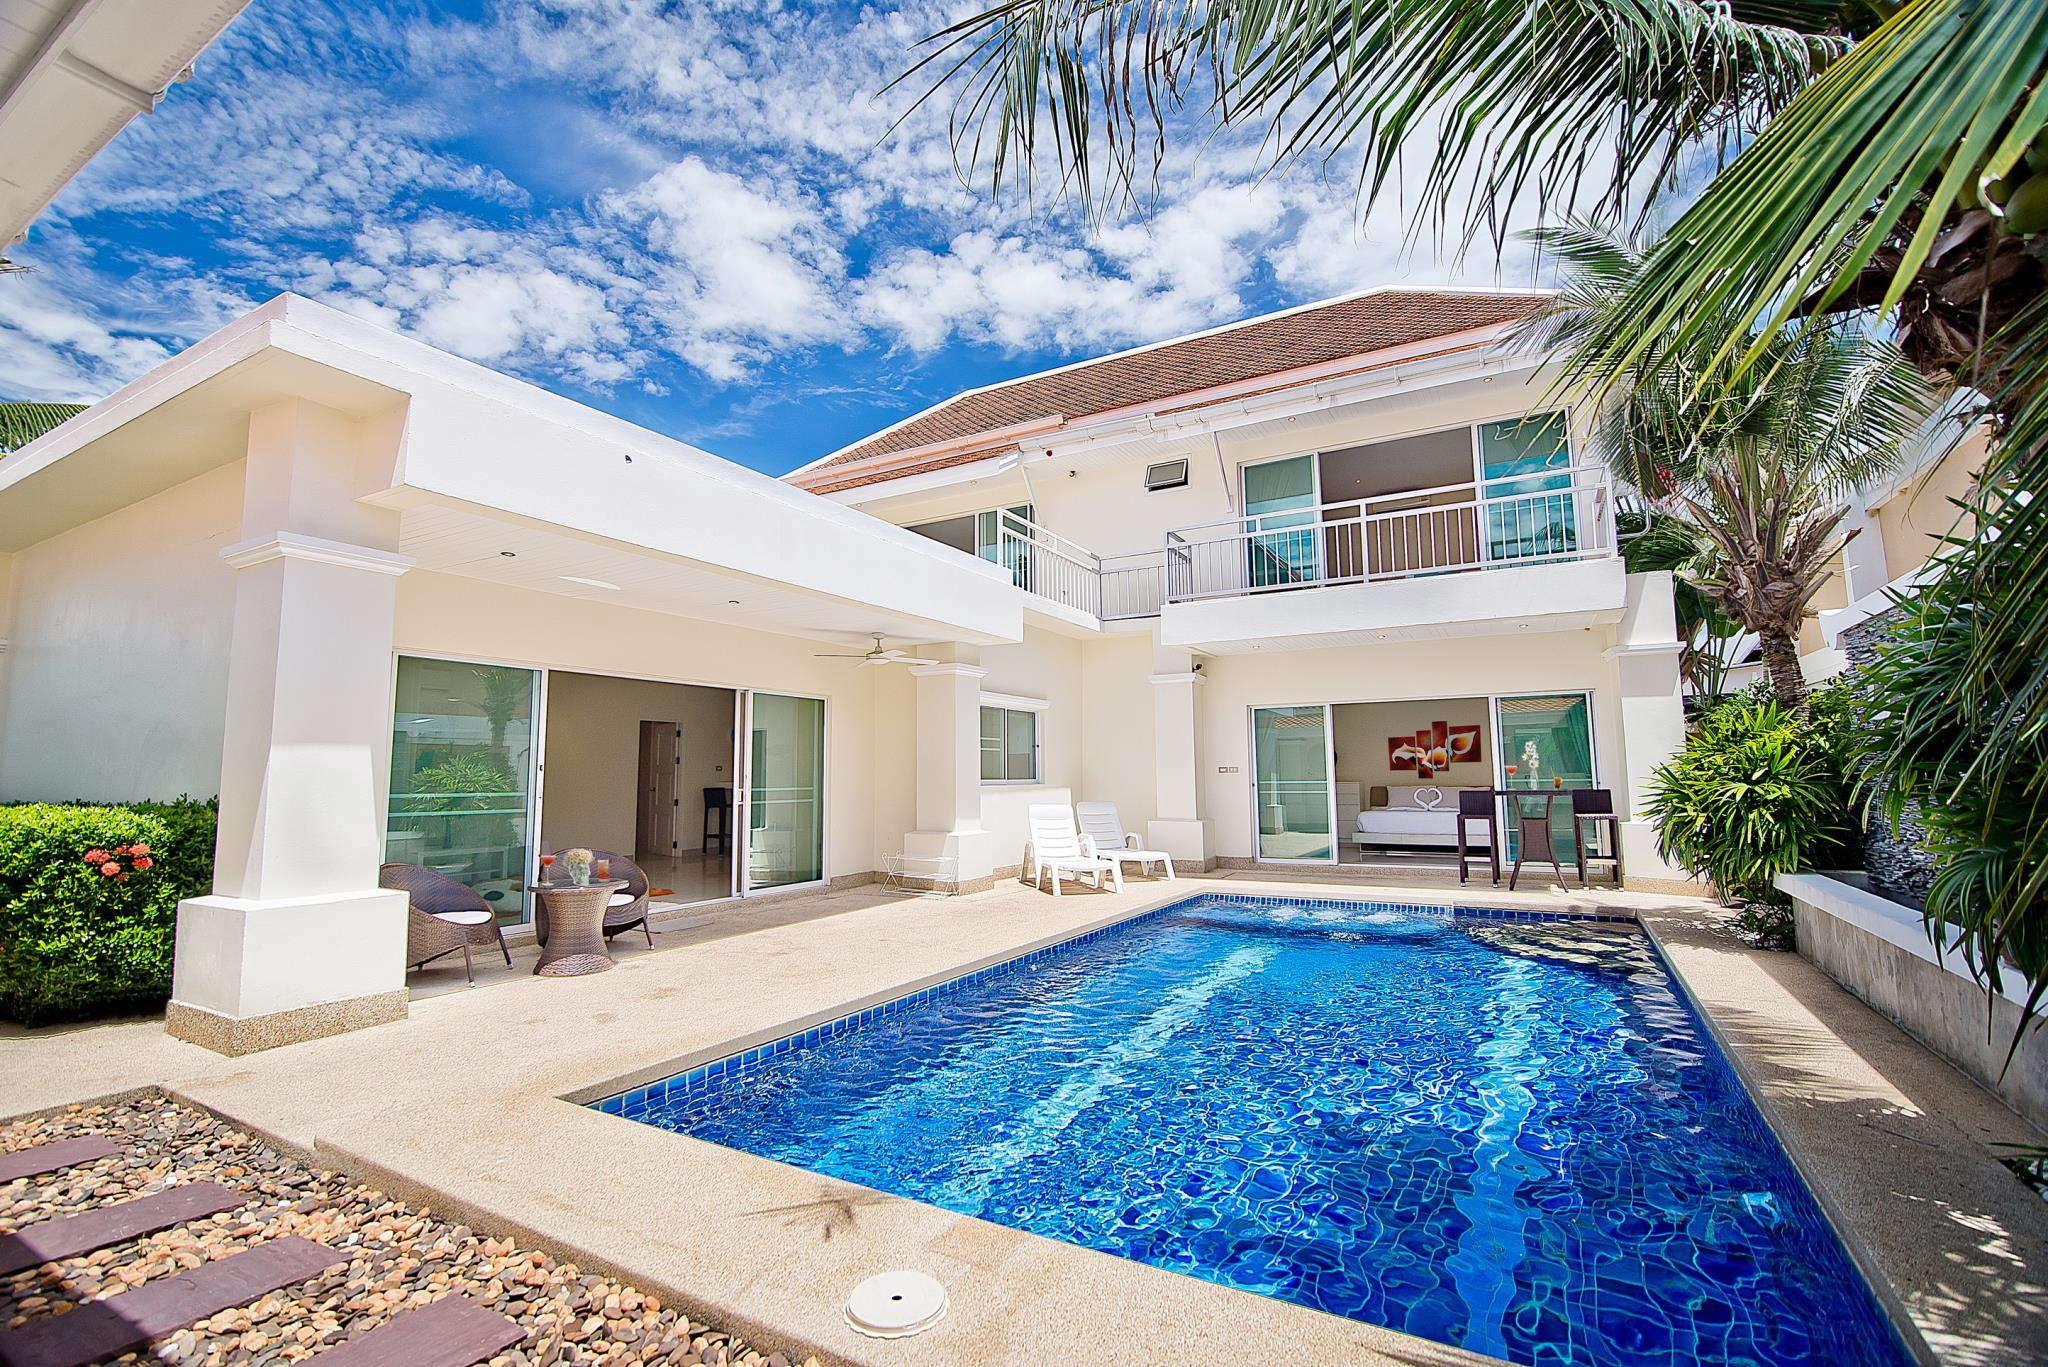 Willa z 4 sypialniami i prywatnym basenem – Na Jomtien 1 (4-Bedroom Villa Na Jomtien 1 with Private Pool)